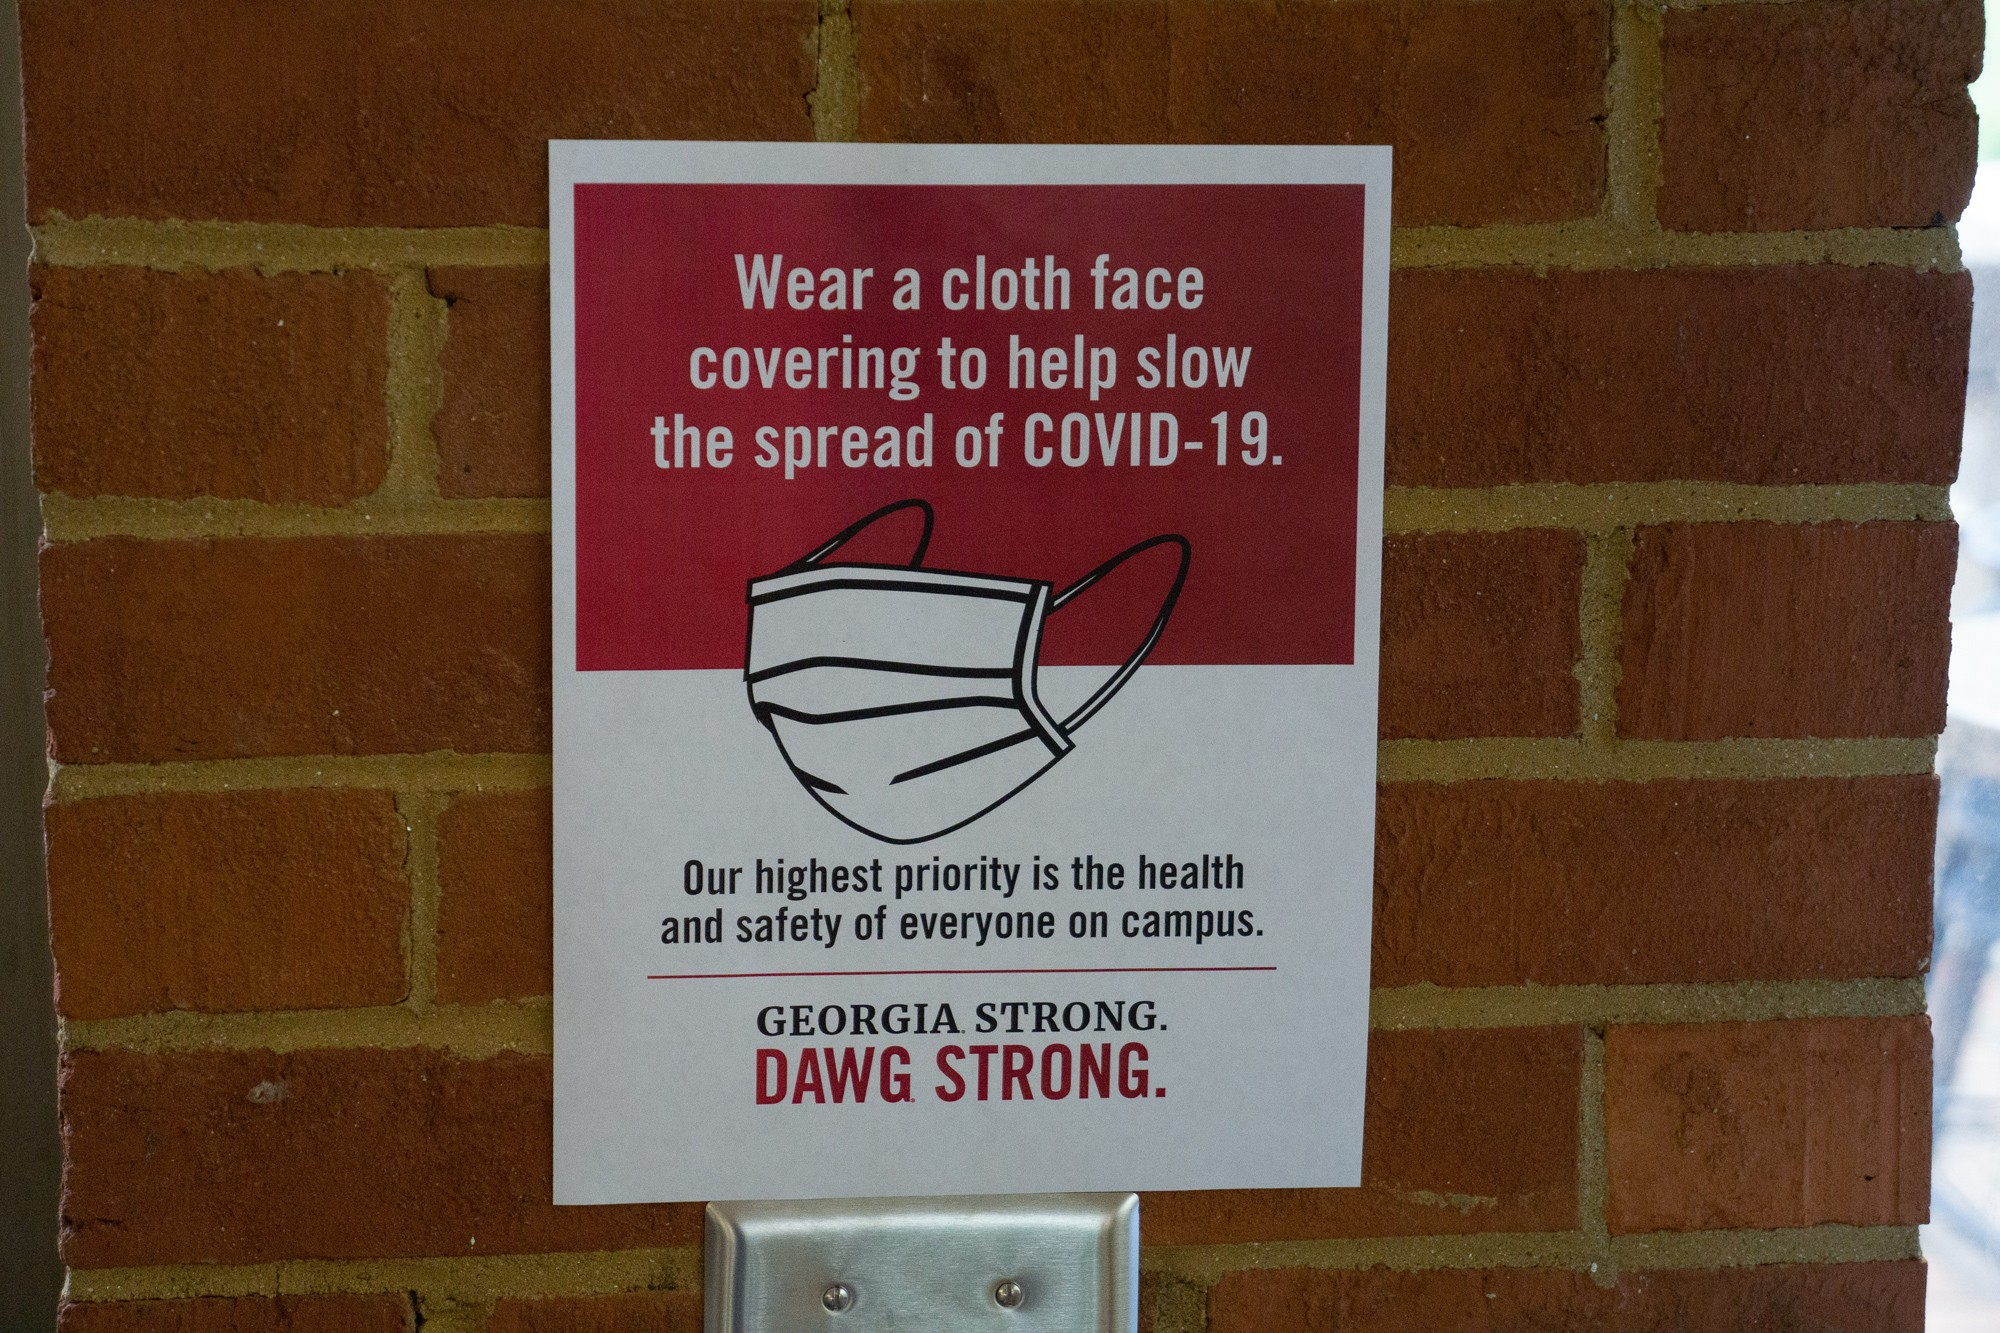 image of signage indicating the requirement of face covering in buildings